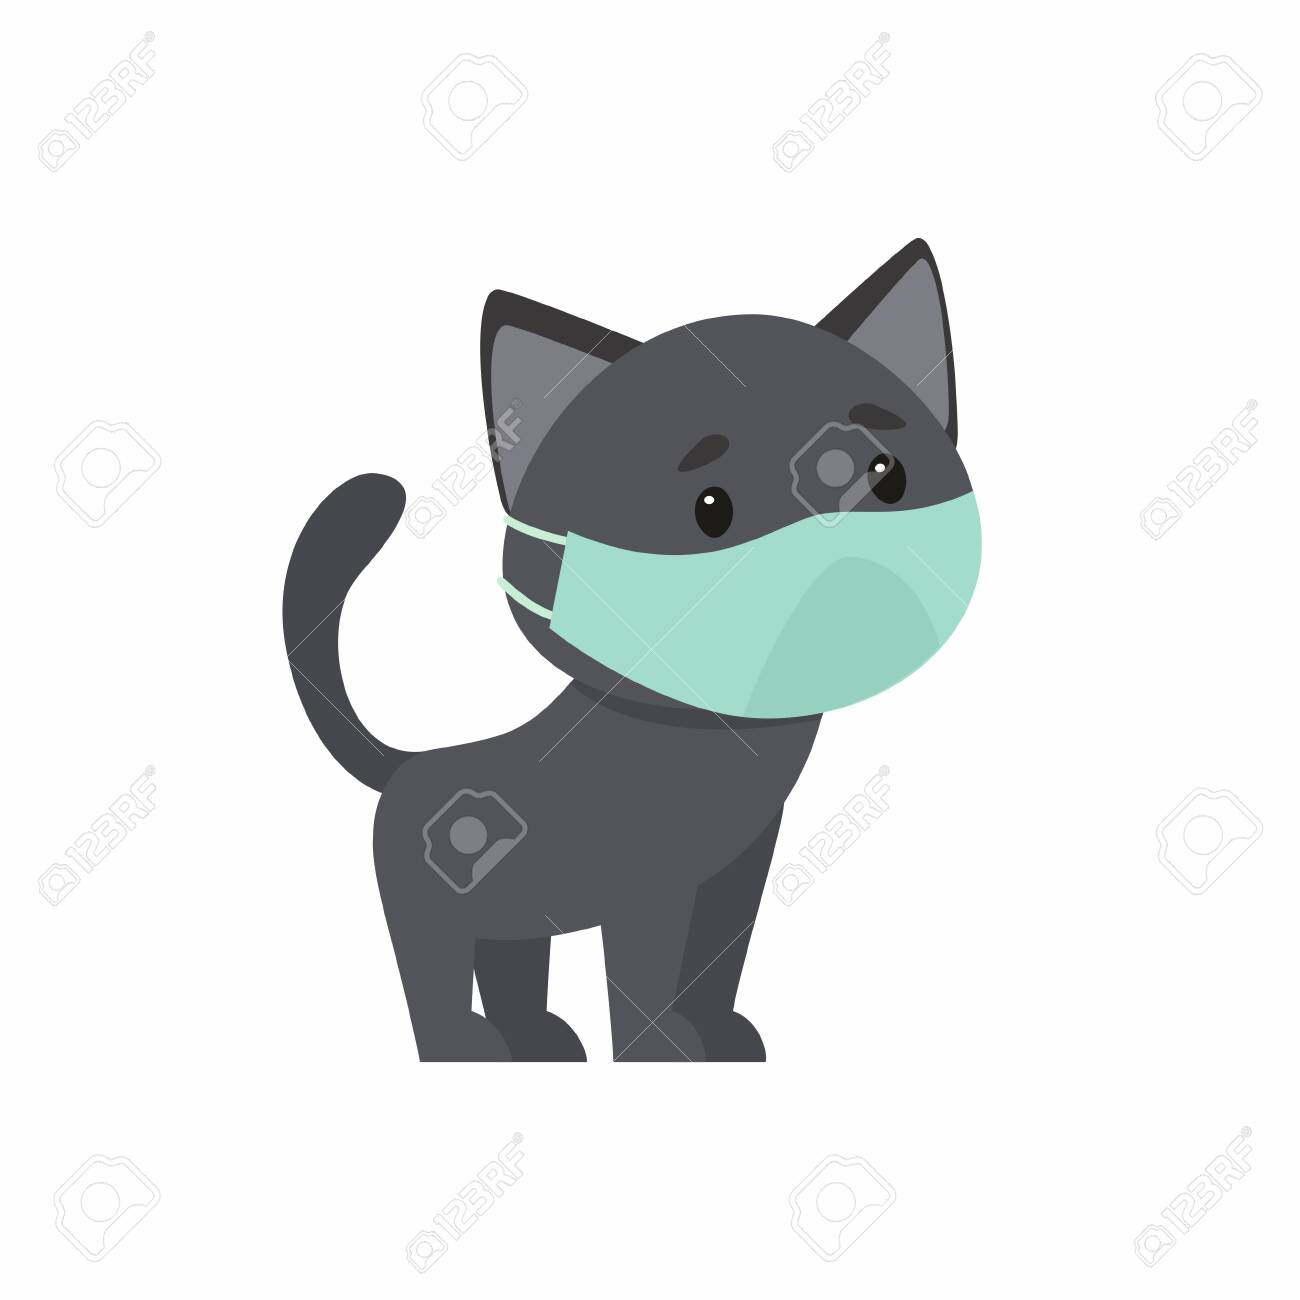 Black kitten with a protective mask on his face. The concept of protection against respiratory diseases, allergies. Vector illustration on a white background. - 141112787